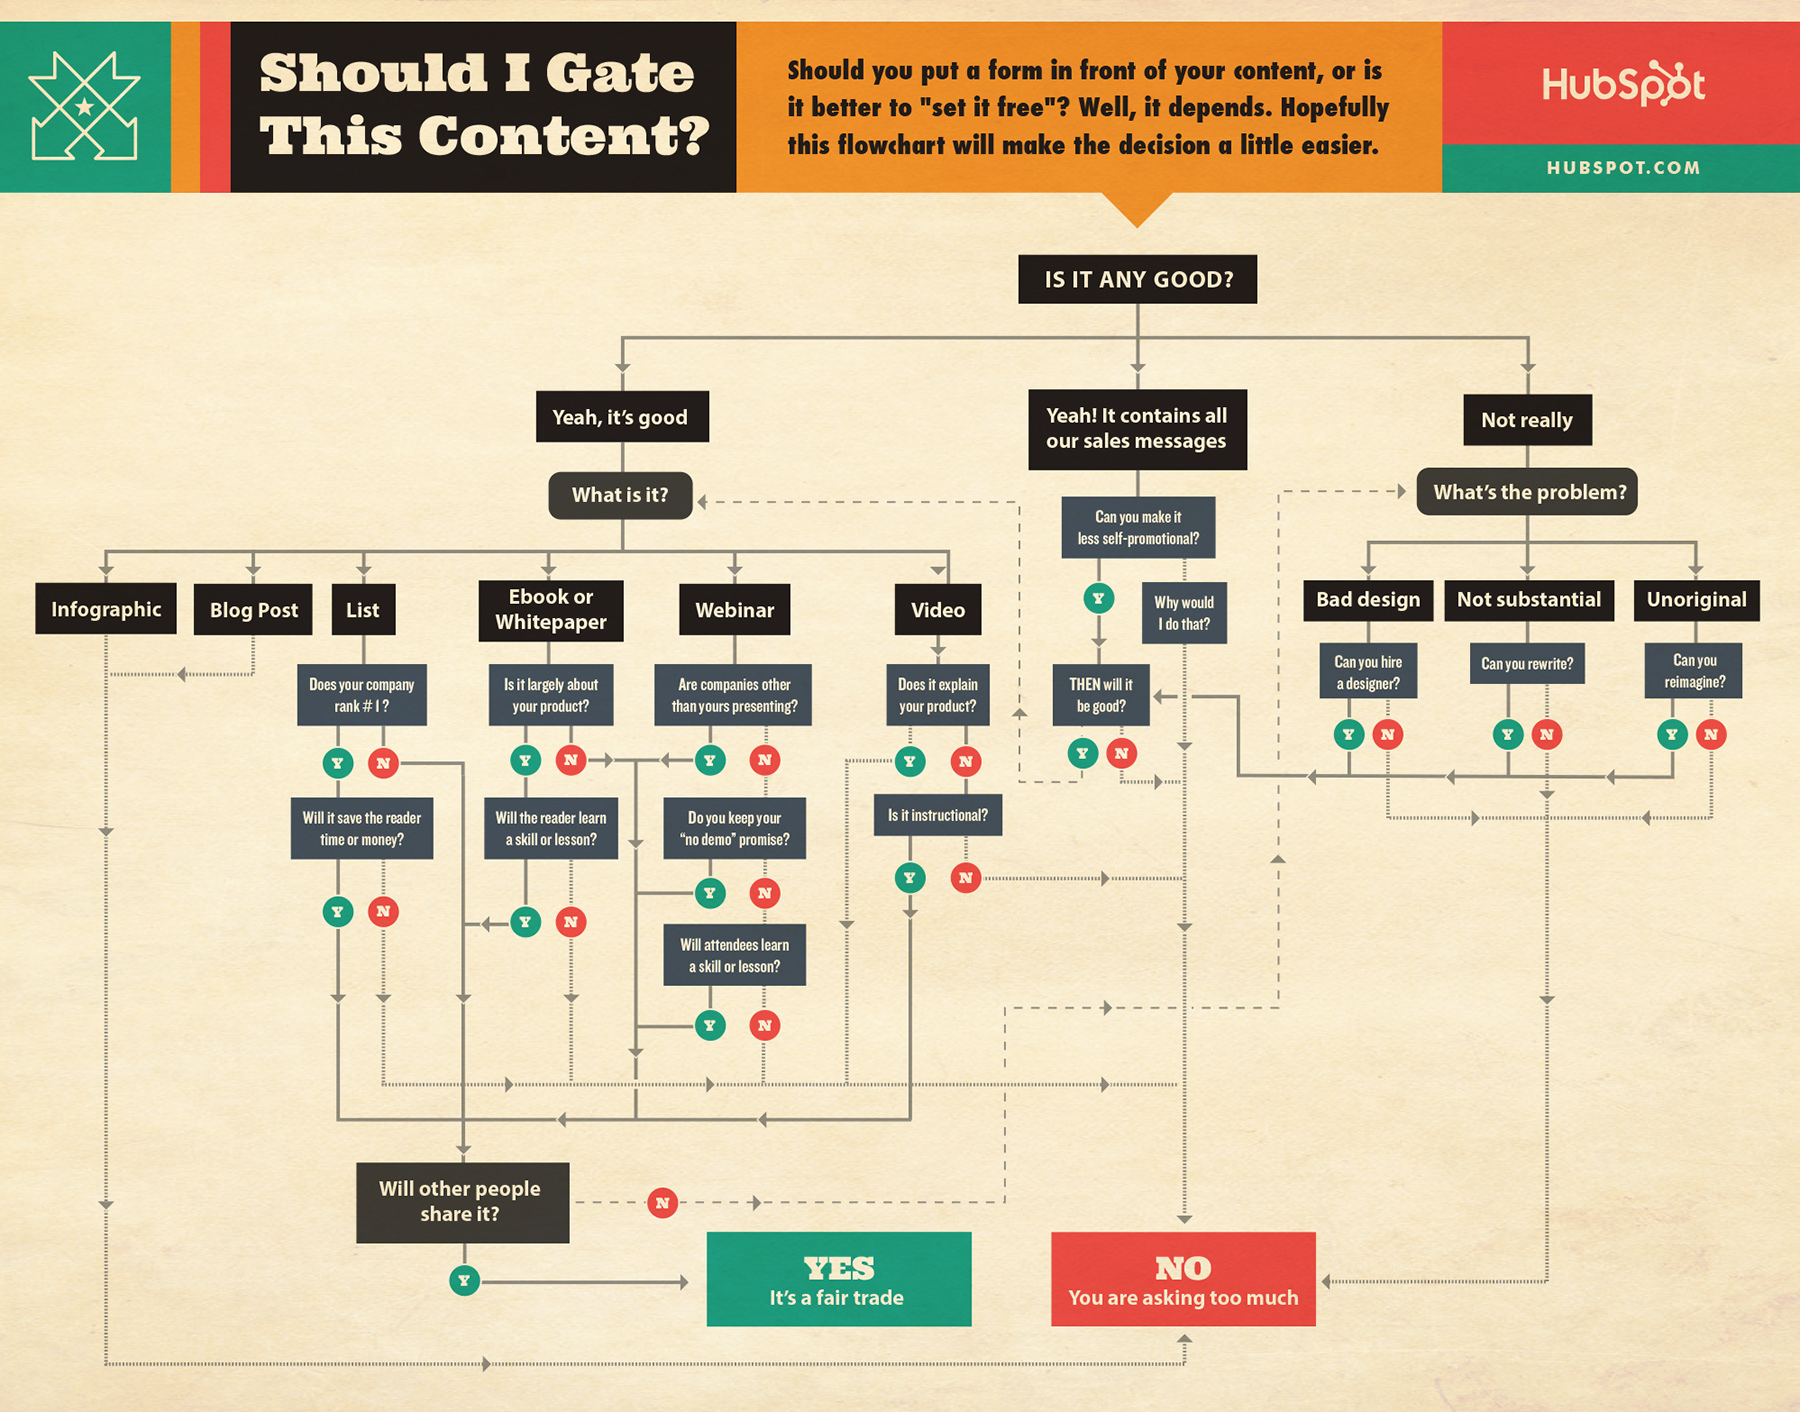 Should i gate this content flowchart should i gate content flowchart hubspot download 195 free design templates pronofoot35fo Image collections